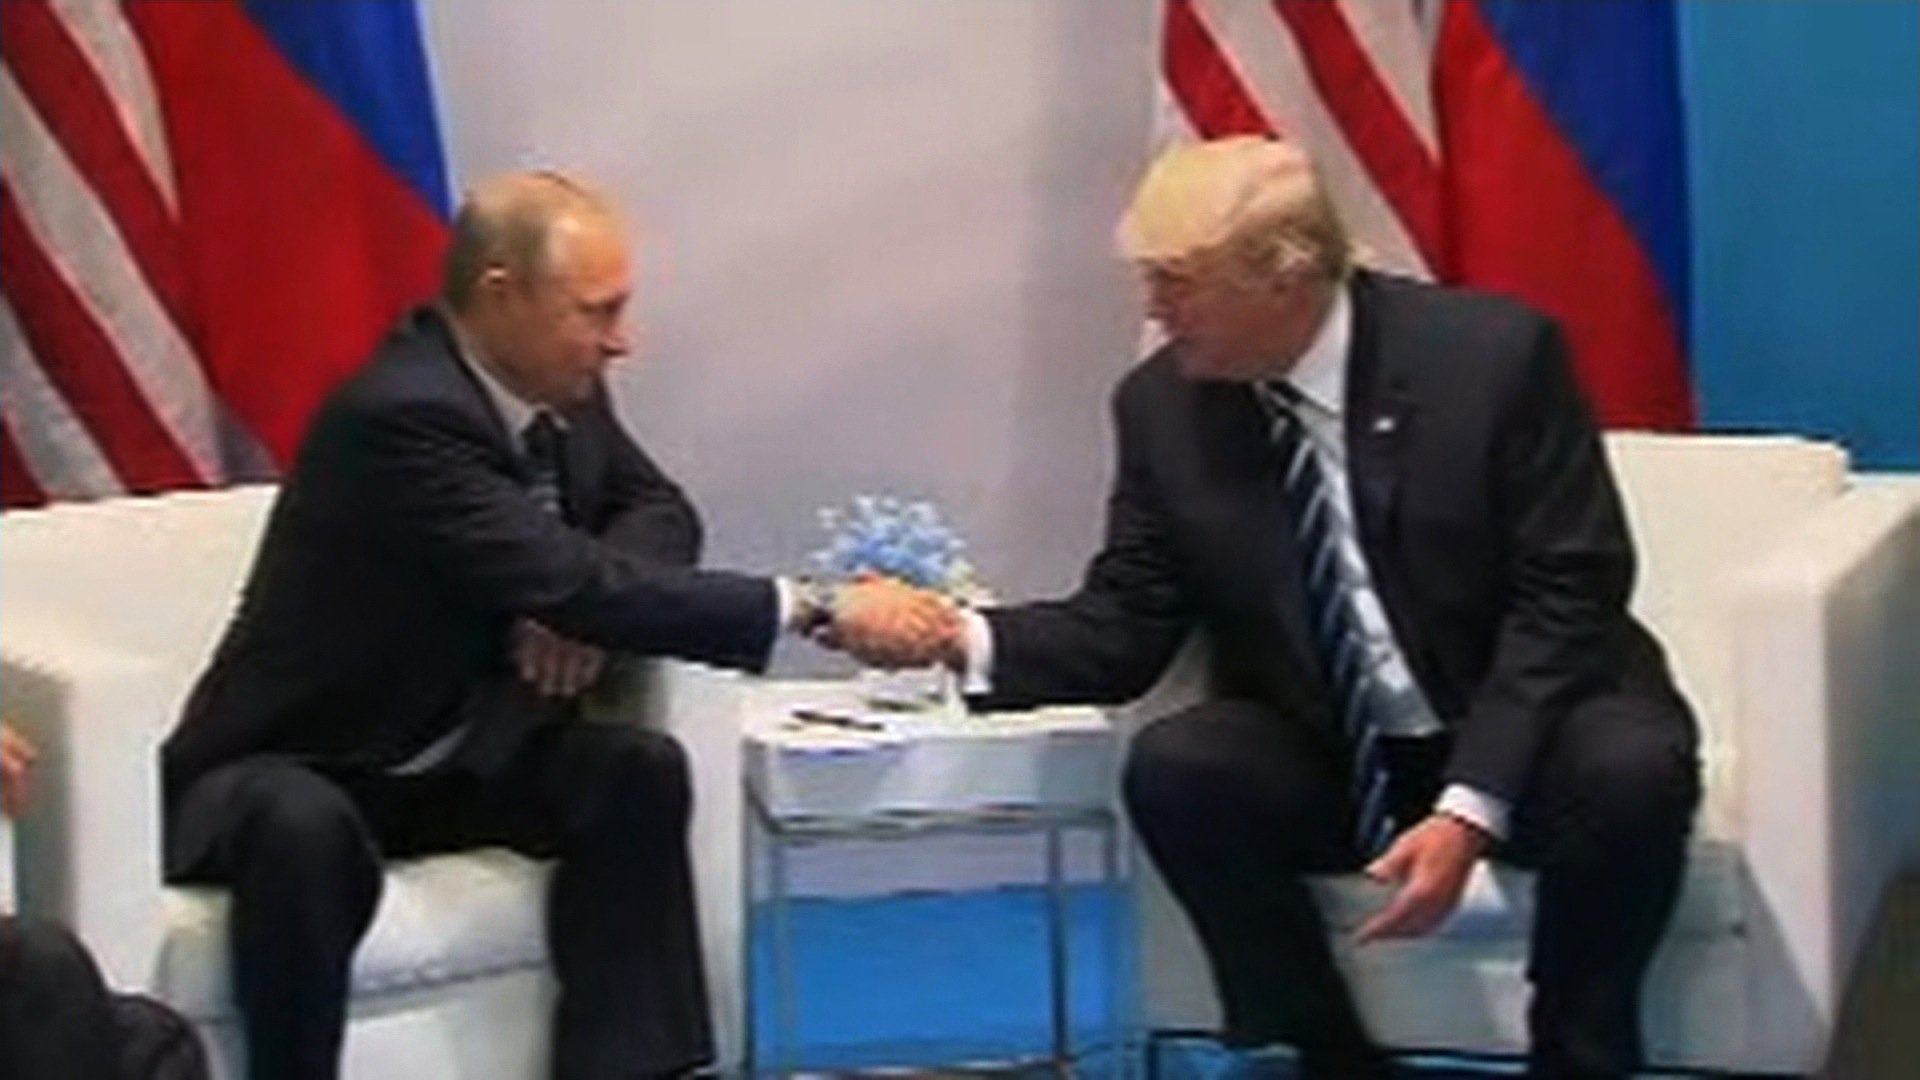 (File Photo) President Donald Trump shakes hands with Russian President Vladimir Putin at the G20 Summit, Friday, July 7, 2017, in Hamburg.